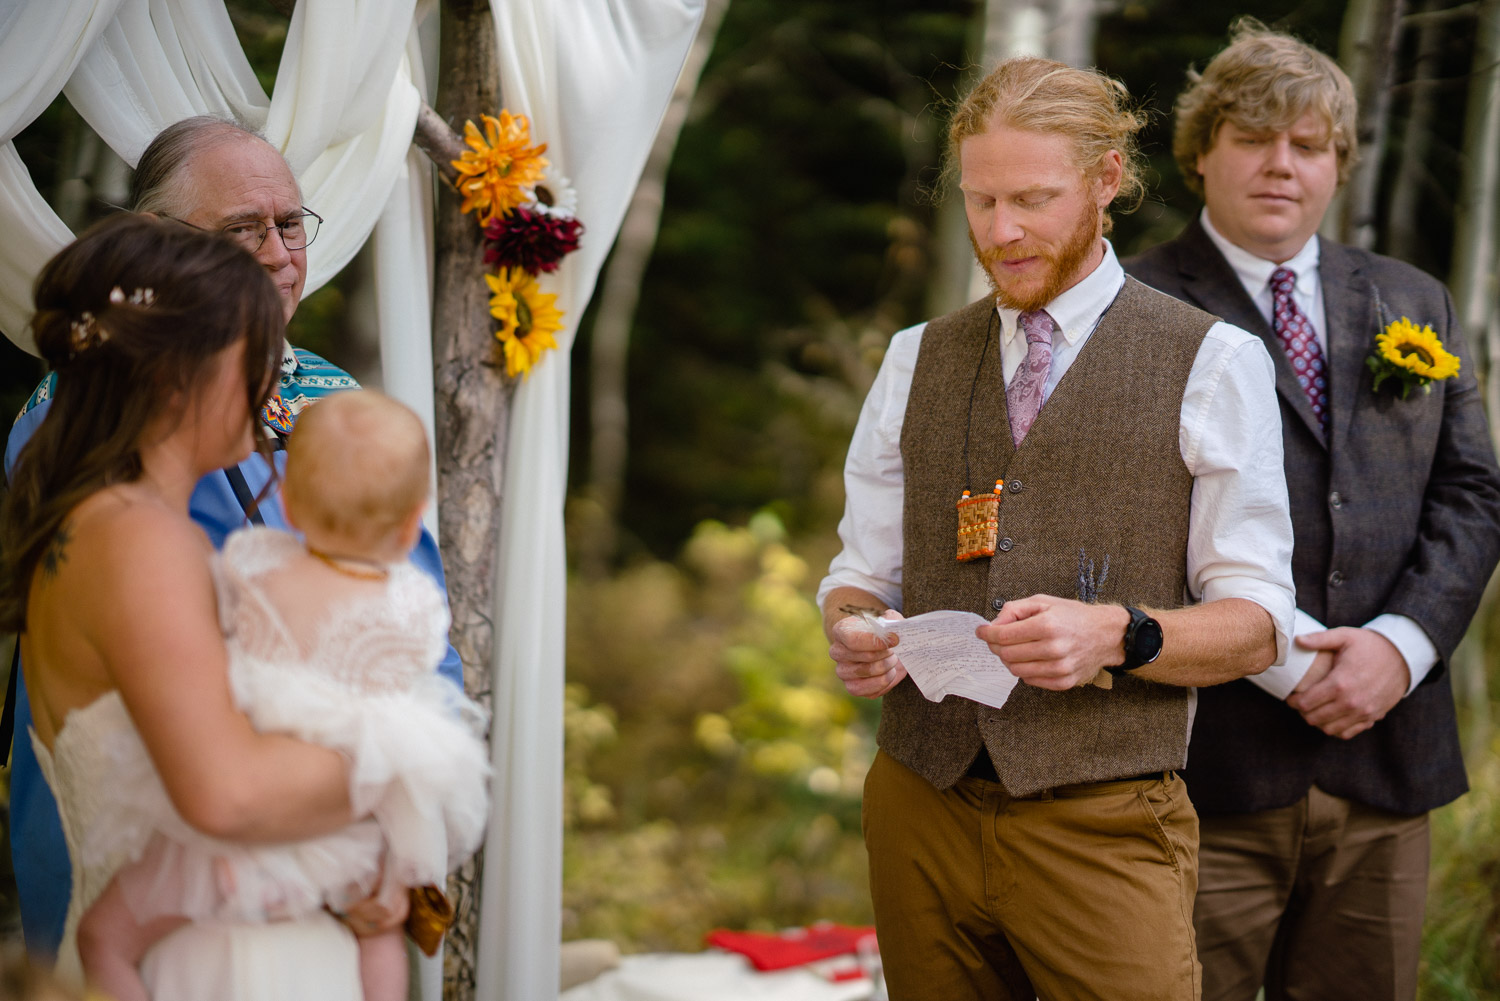 groom reading vows to bride and baby with officiant and best man at outdoor altar